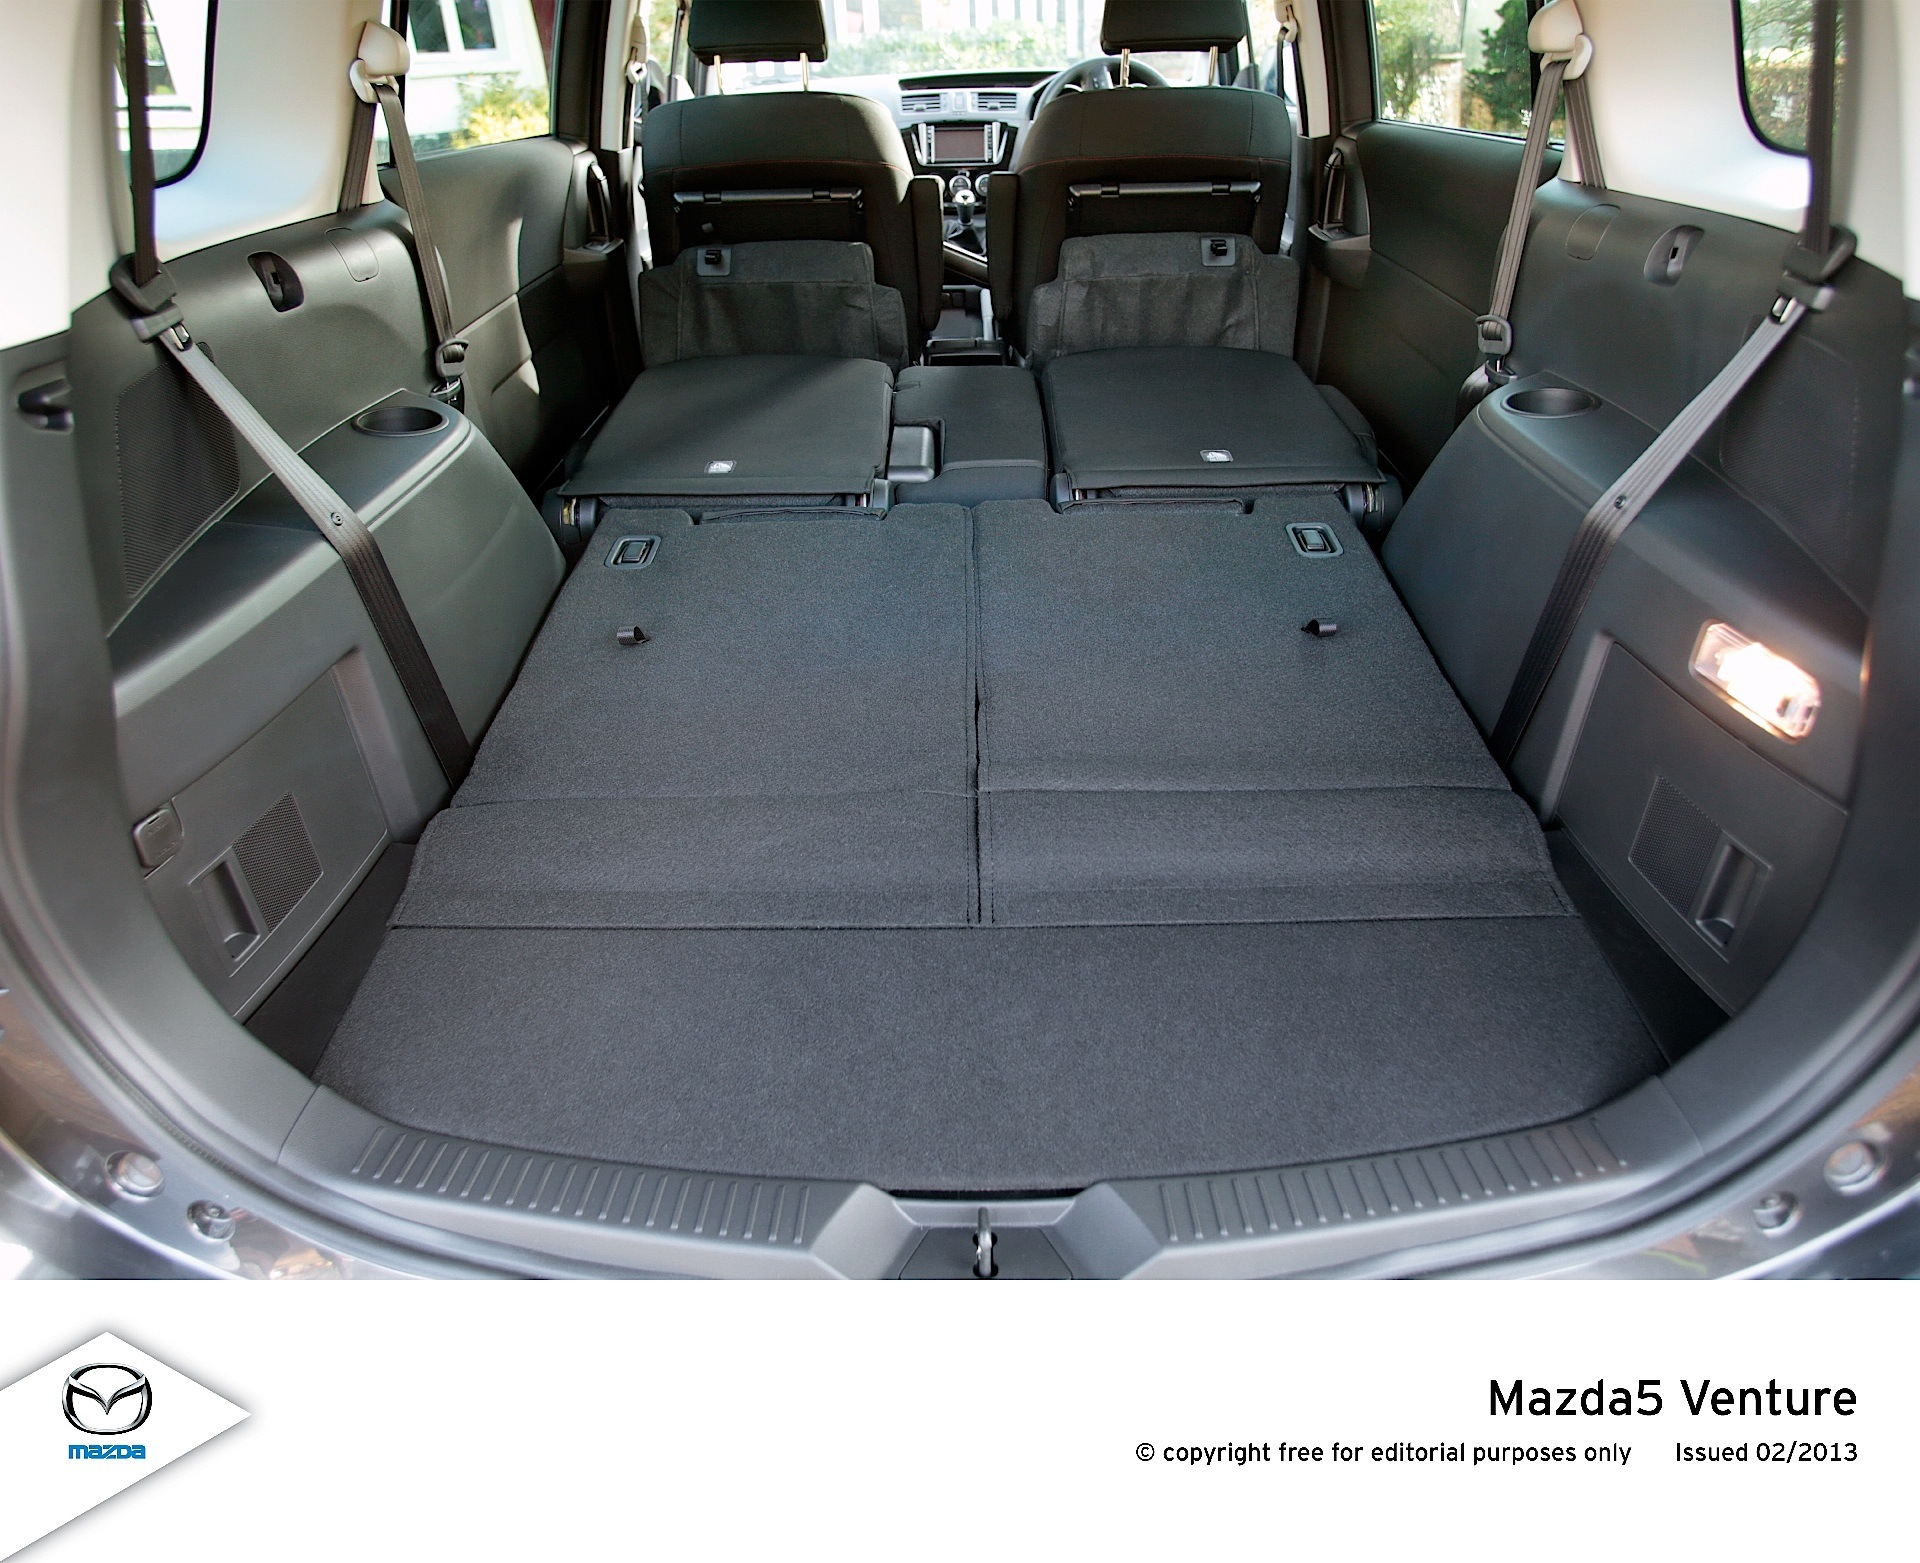 mazda 5 premacy 2010 2011 2012 2013 2014 2015. Black Bedroom Furniture Sets. Home Design Ideas